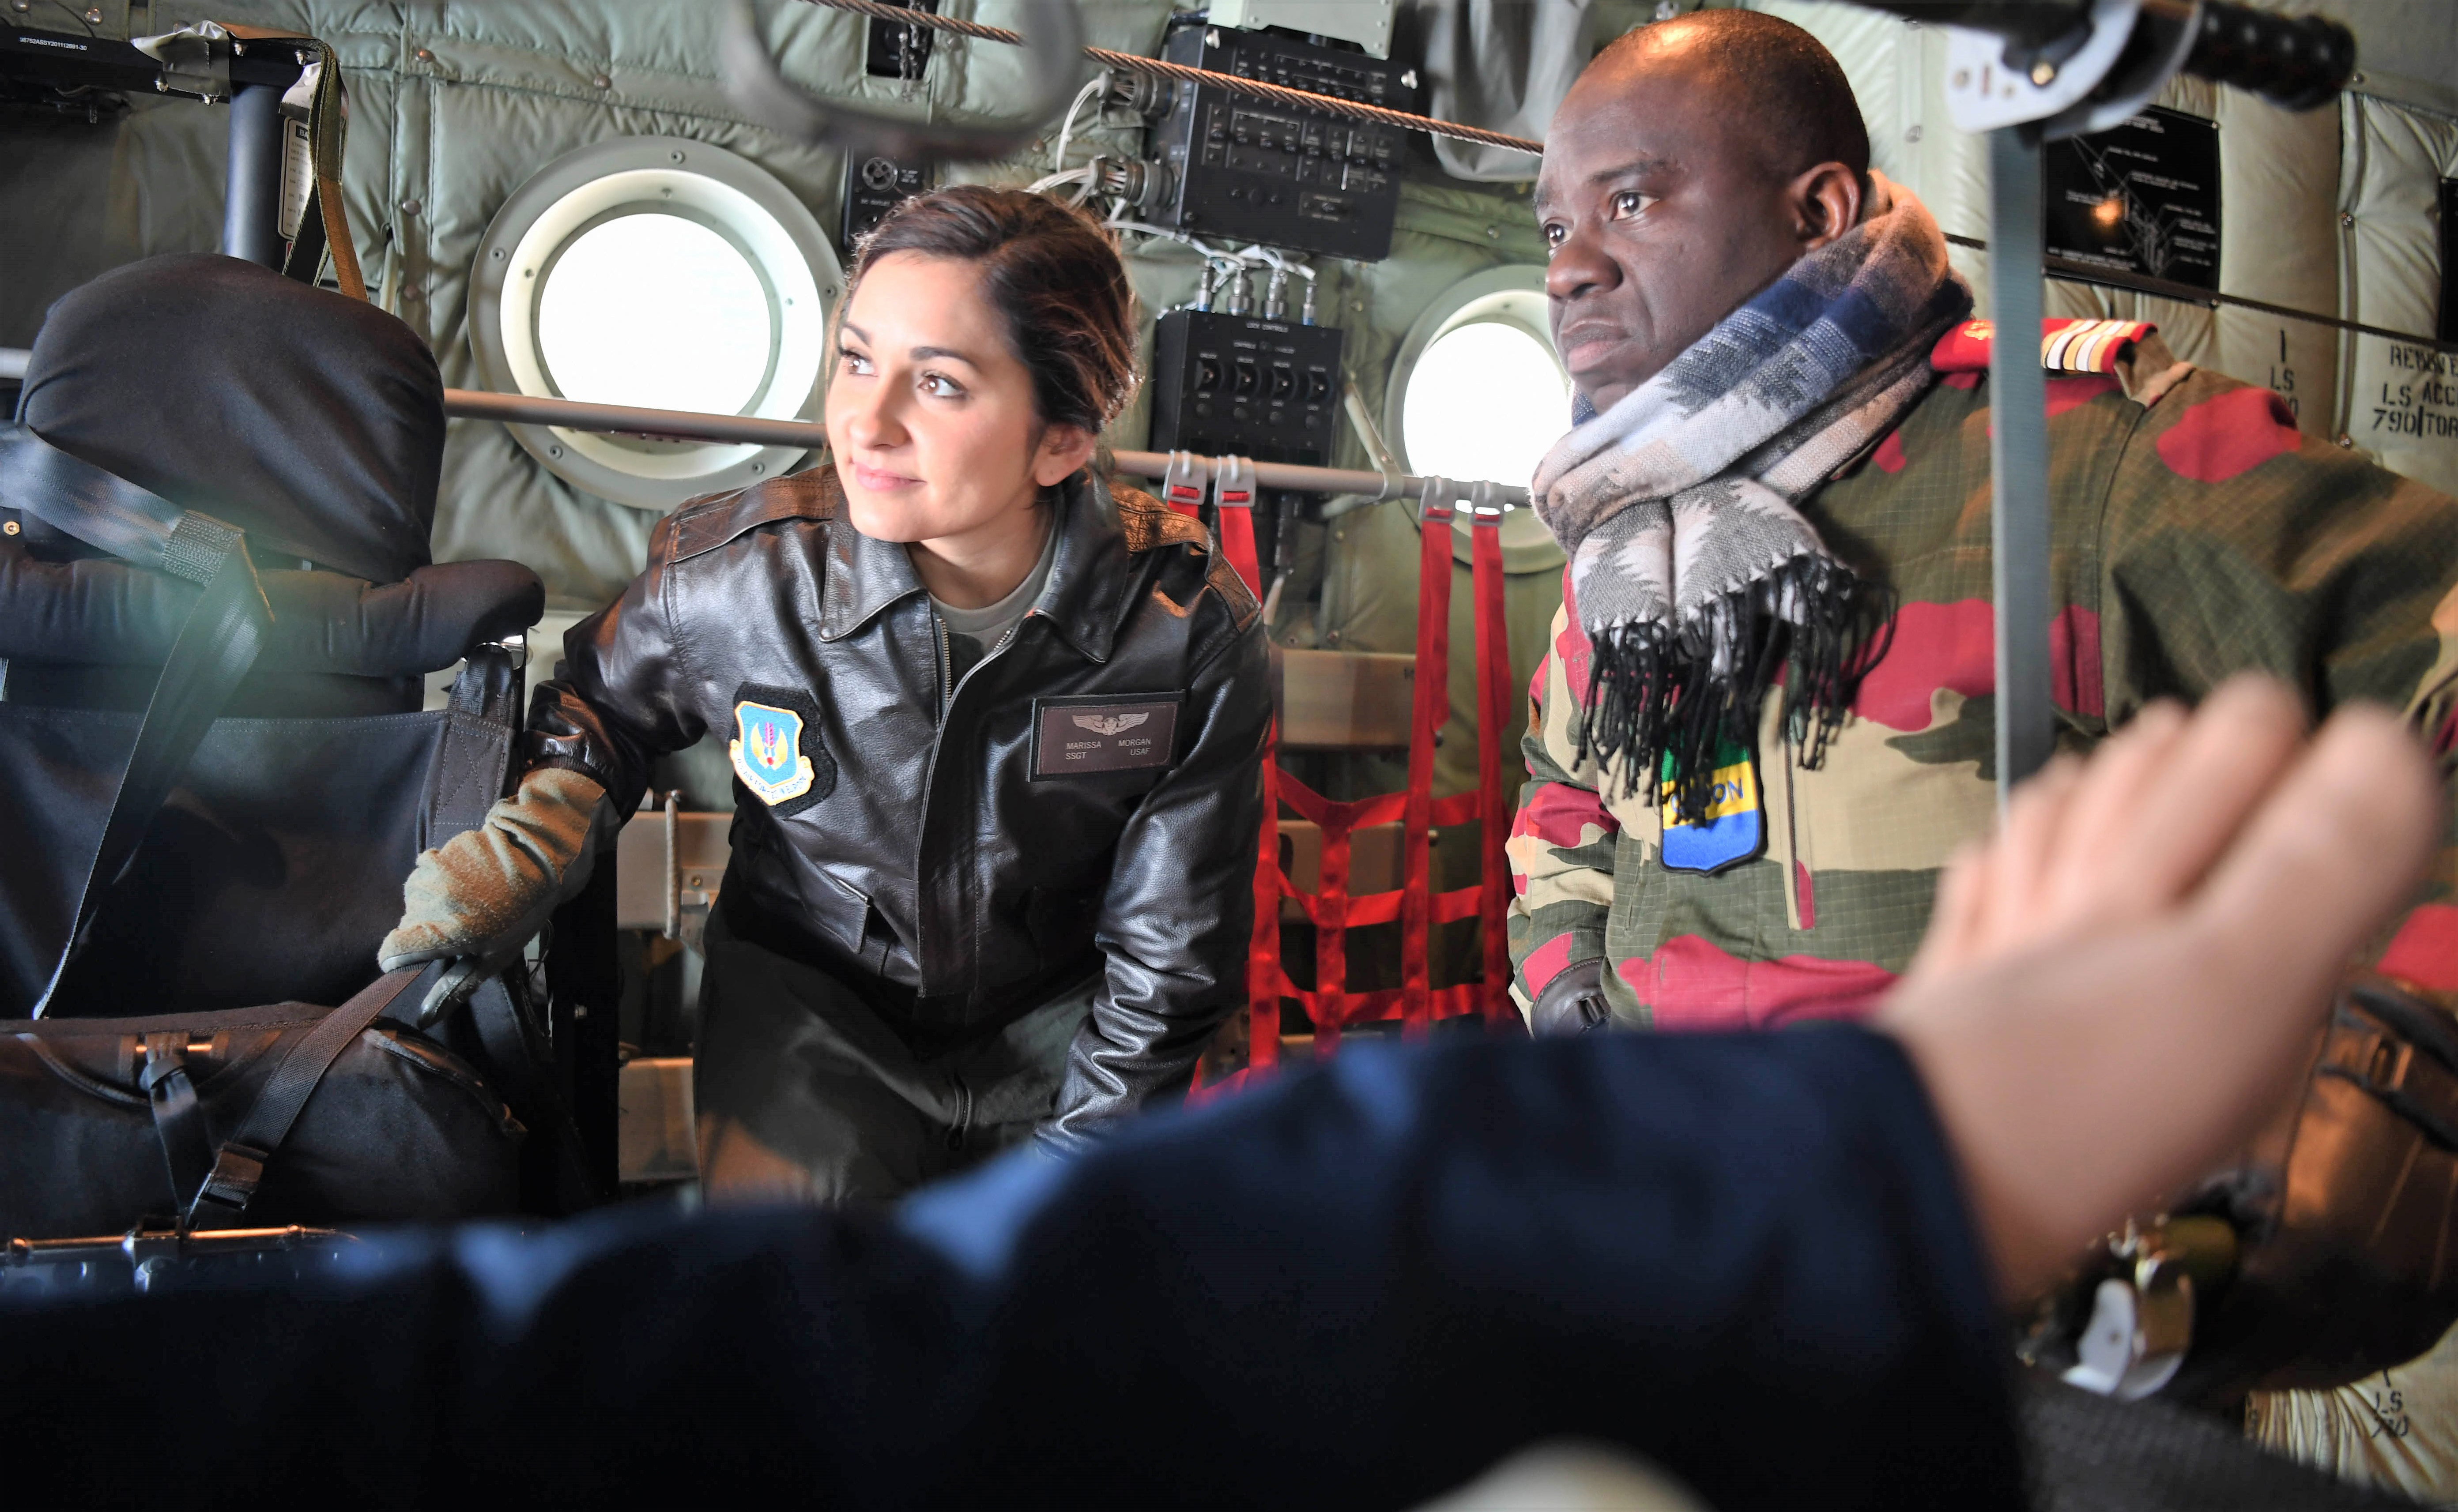 U.S. Air Force Staff Sgt. Marissa Morgan, 86th Aeromedical Evacuation Squadron aeromedical technician, and Gabon air force Capt. Herve Batamio, prepare to load a patient on to a C-130J Super Hercules at Ramstein Air Base, Germany, Jan. 18, 2018. Thirteen countries gathered at Ramstein to exchange aeromedical tactics, techniques, and procedures to encourage working relationships between the nations during a week-long symposium. (U.S. Air Force photo by Tech. Sgt. Rachelle Coleman)